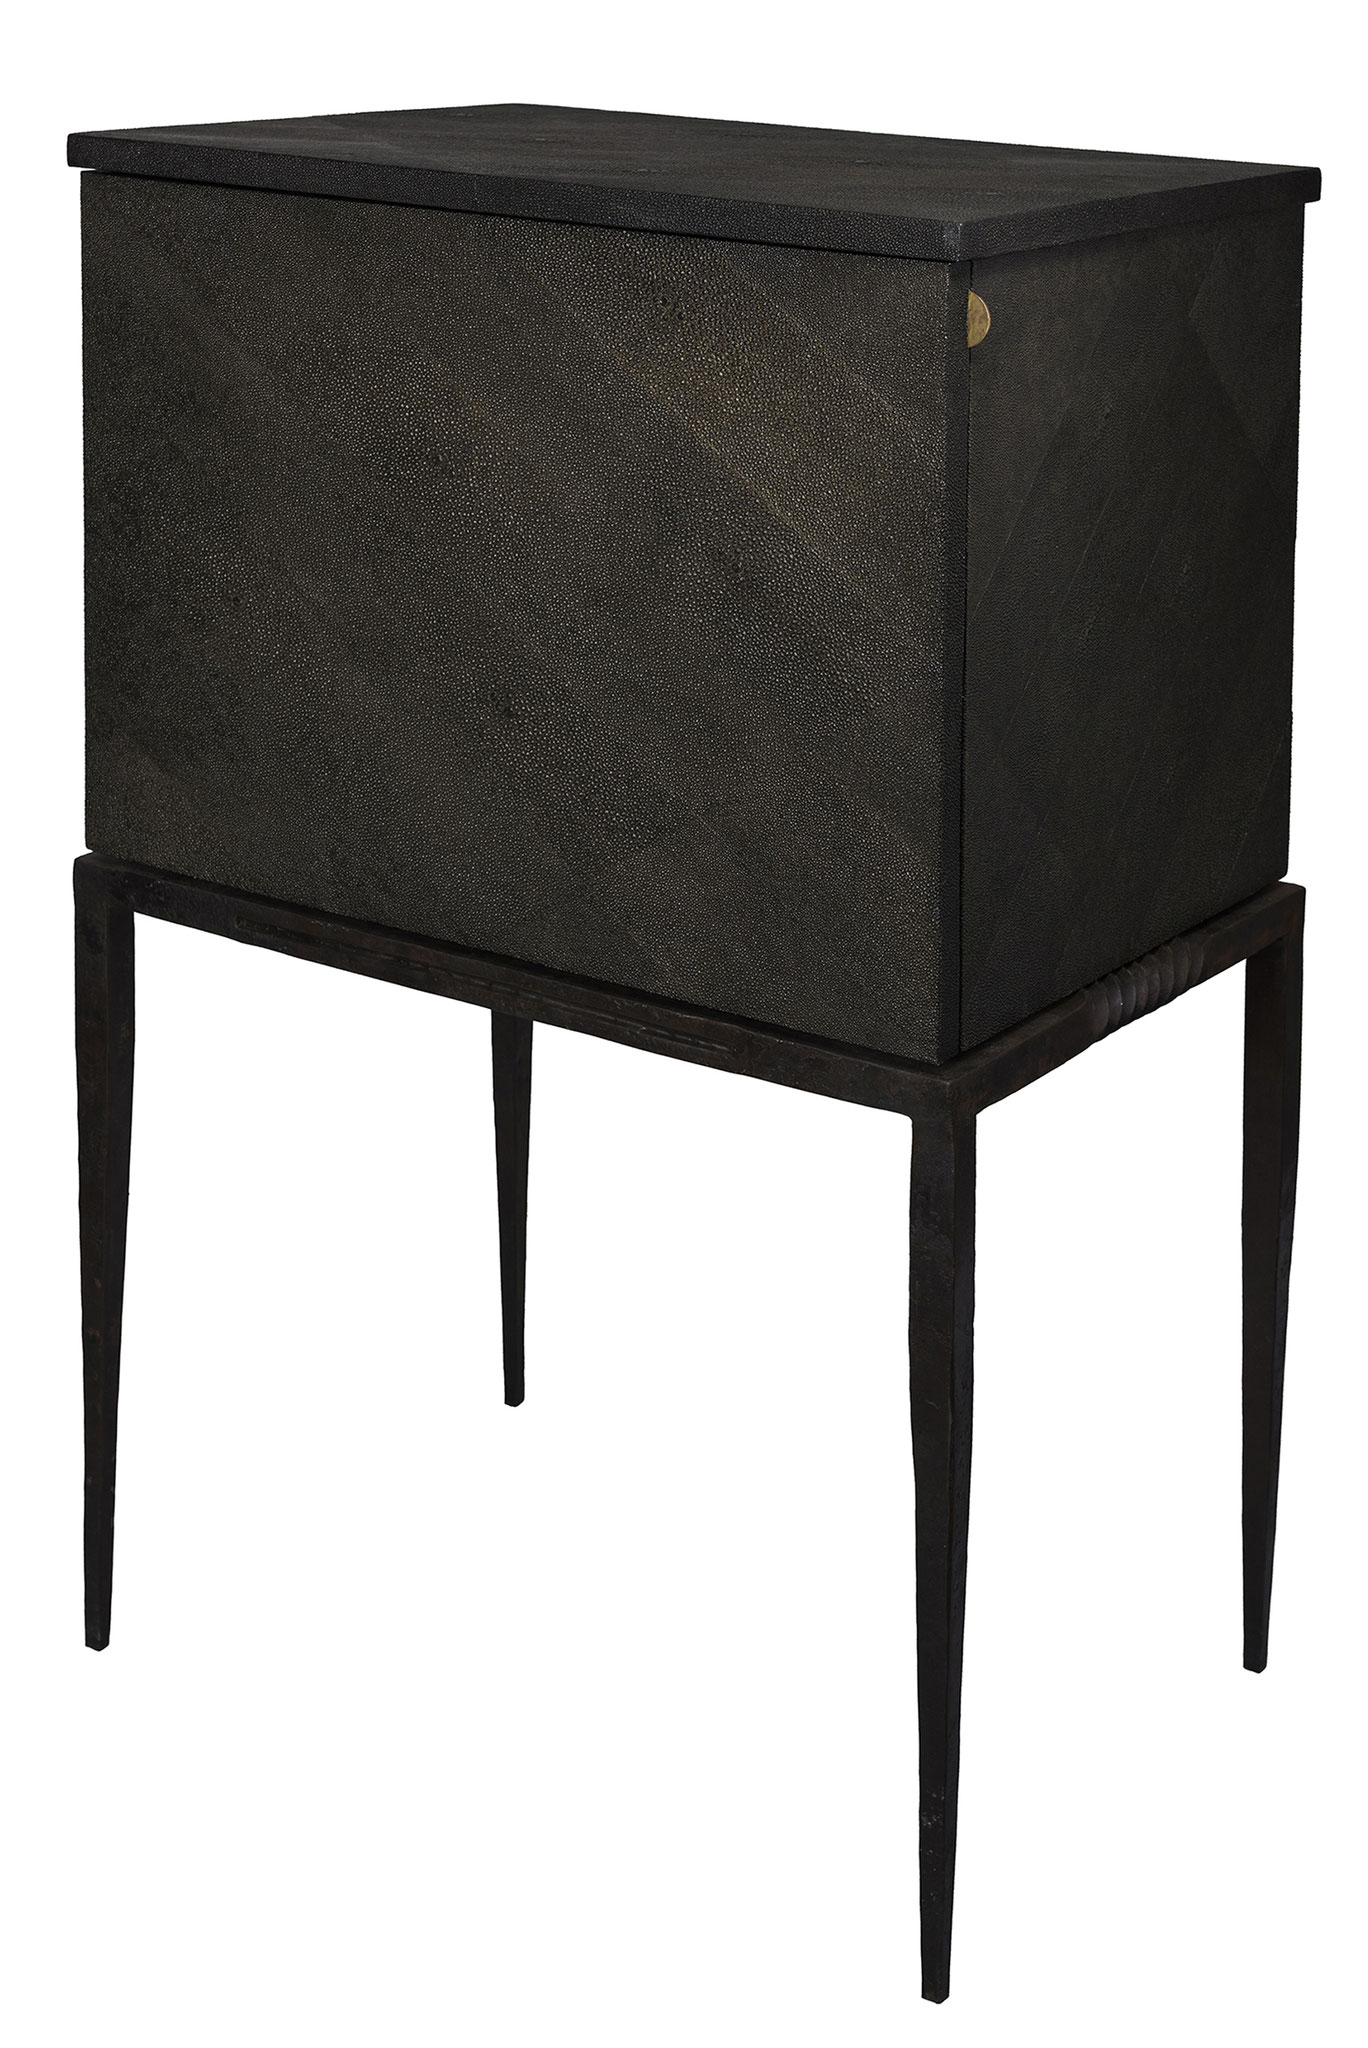 Console covered with faux-shragreen, feets in iron brass - Custom made piece - 73 x 47 x 53 cm